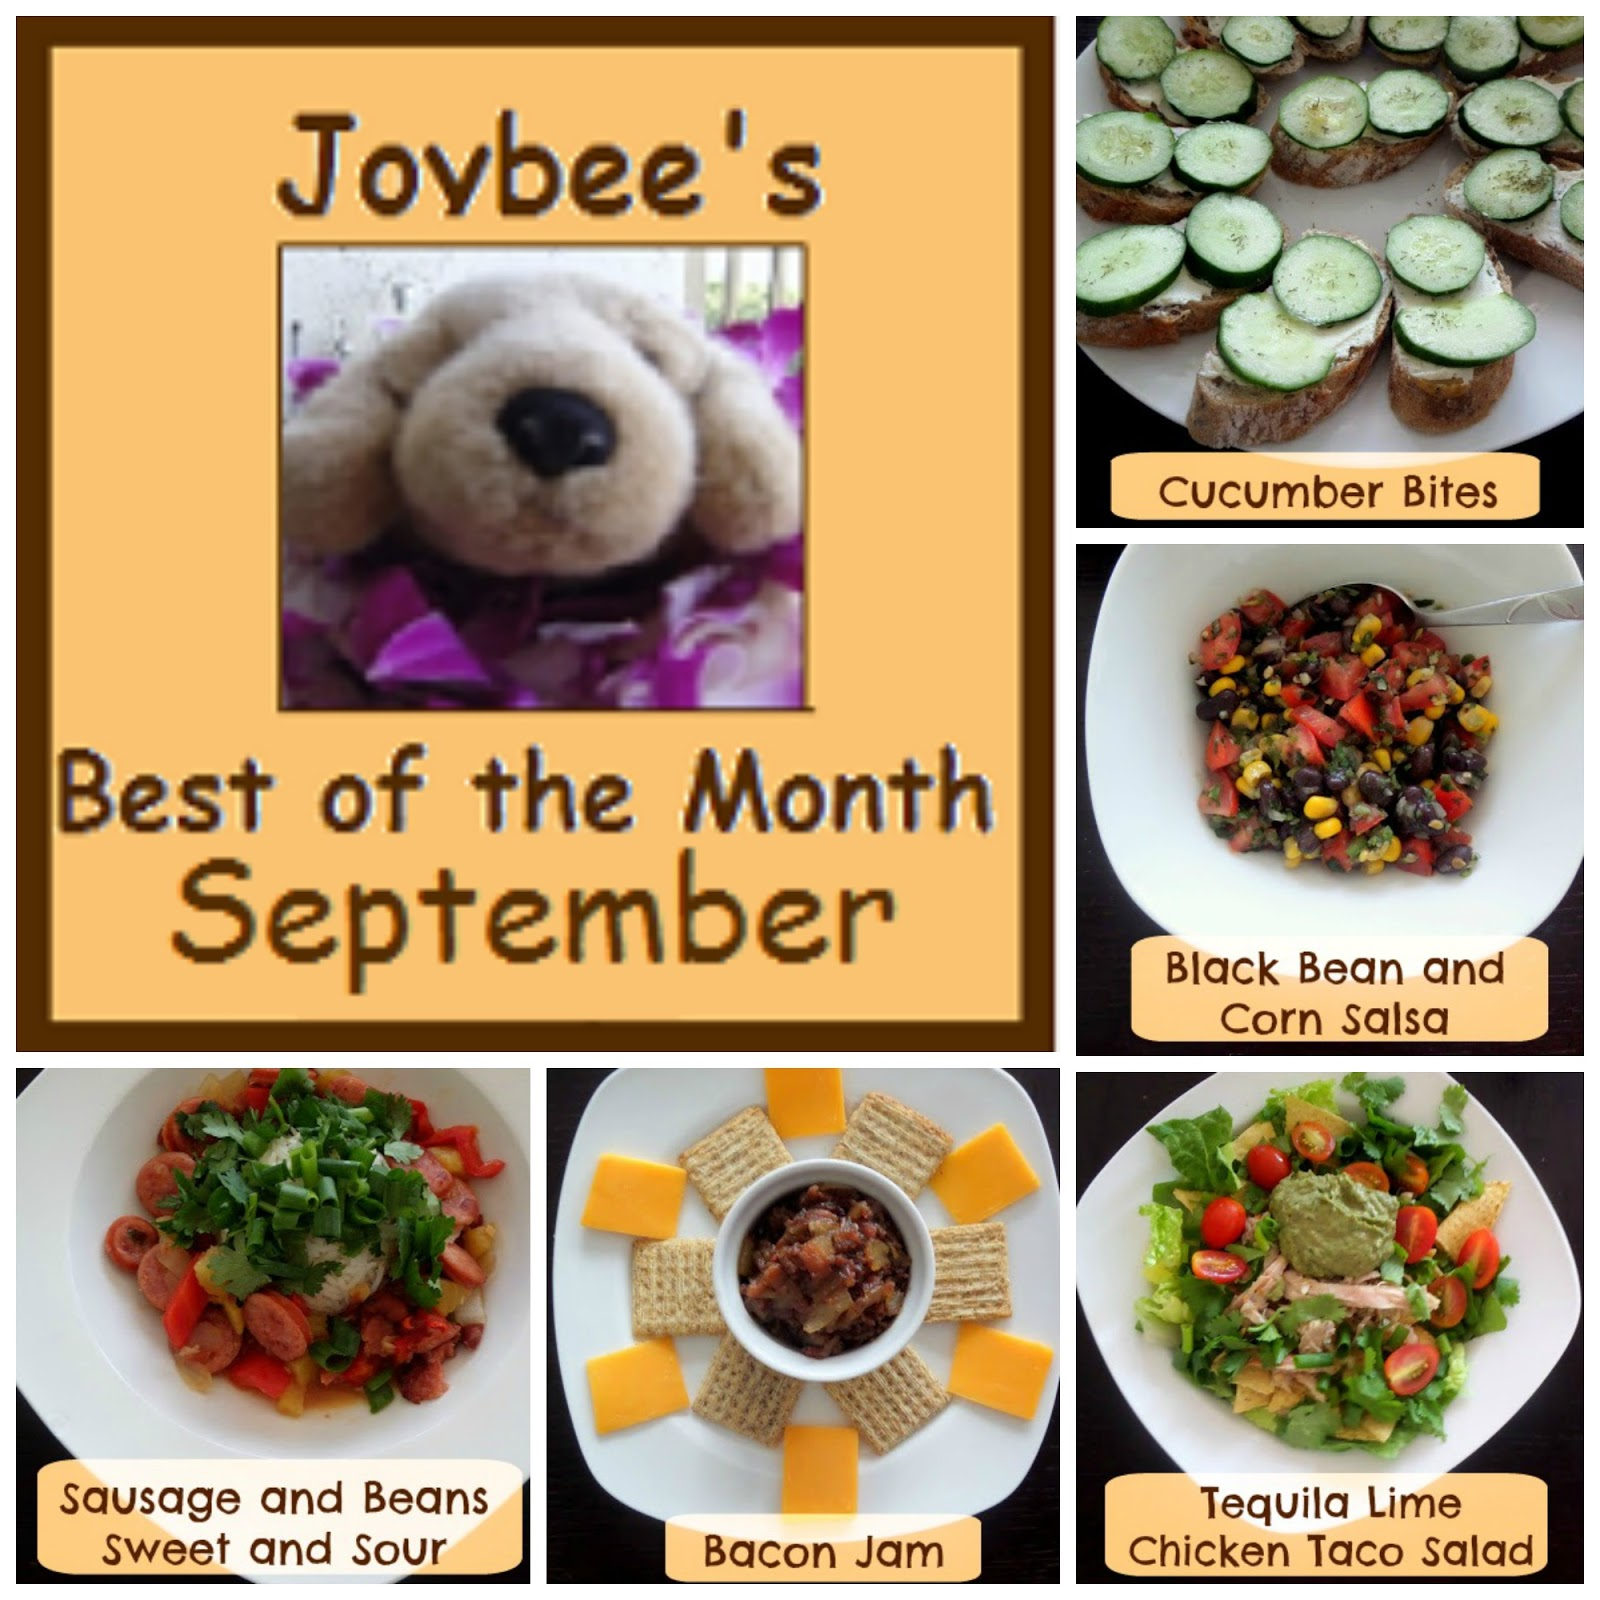 Best of the Month September 2014:  A recap of my most popular posts from September 2014